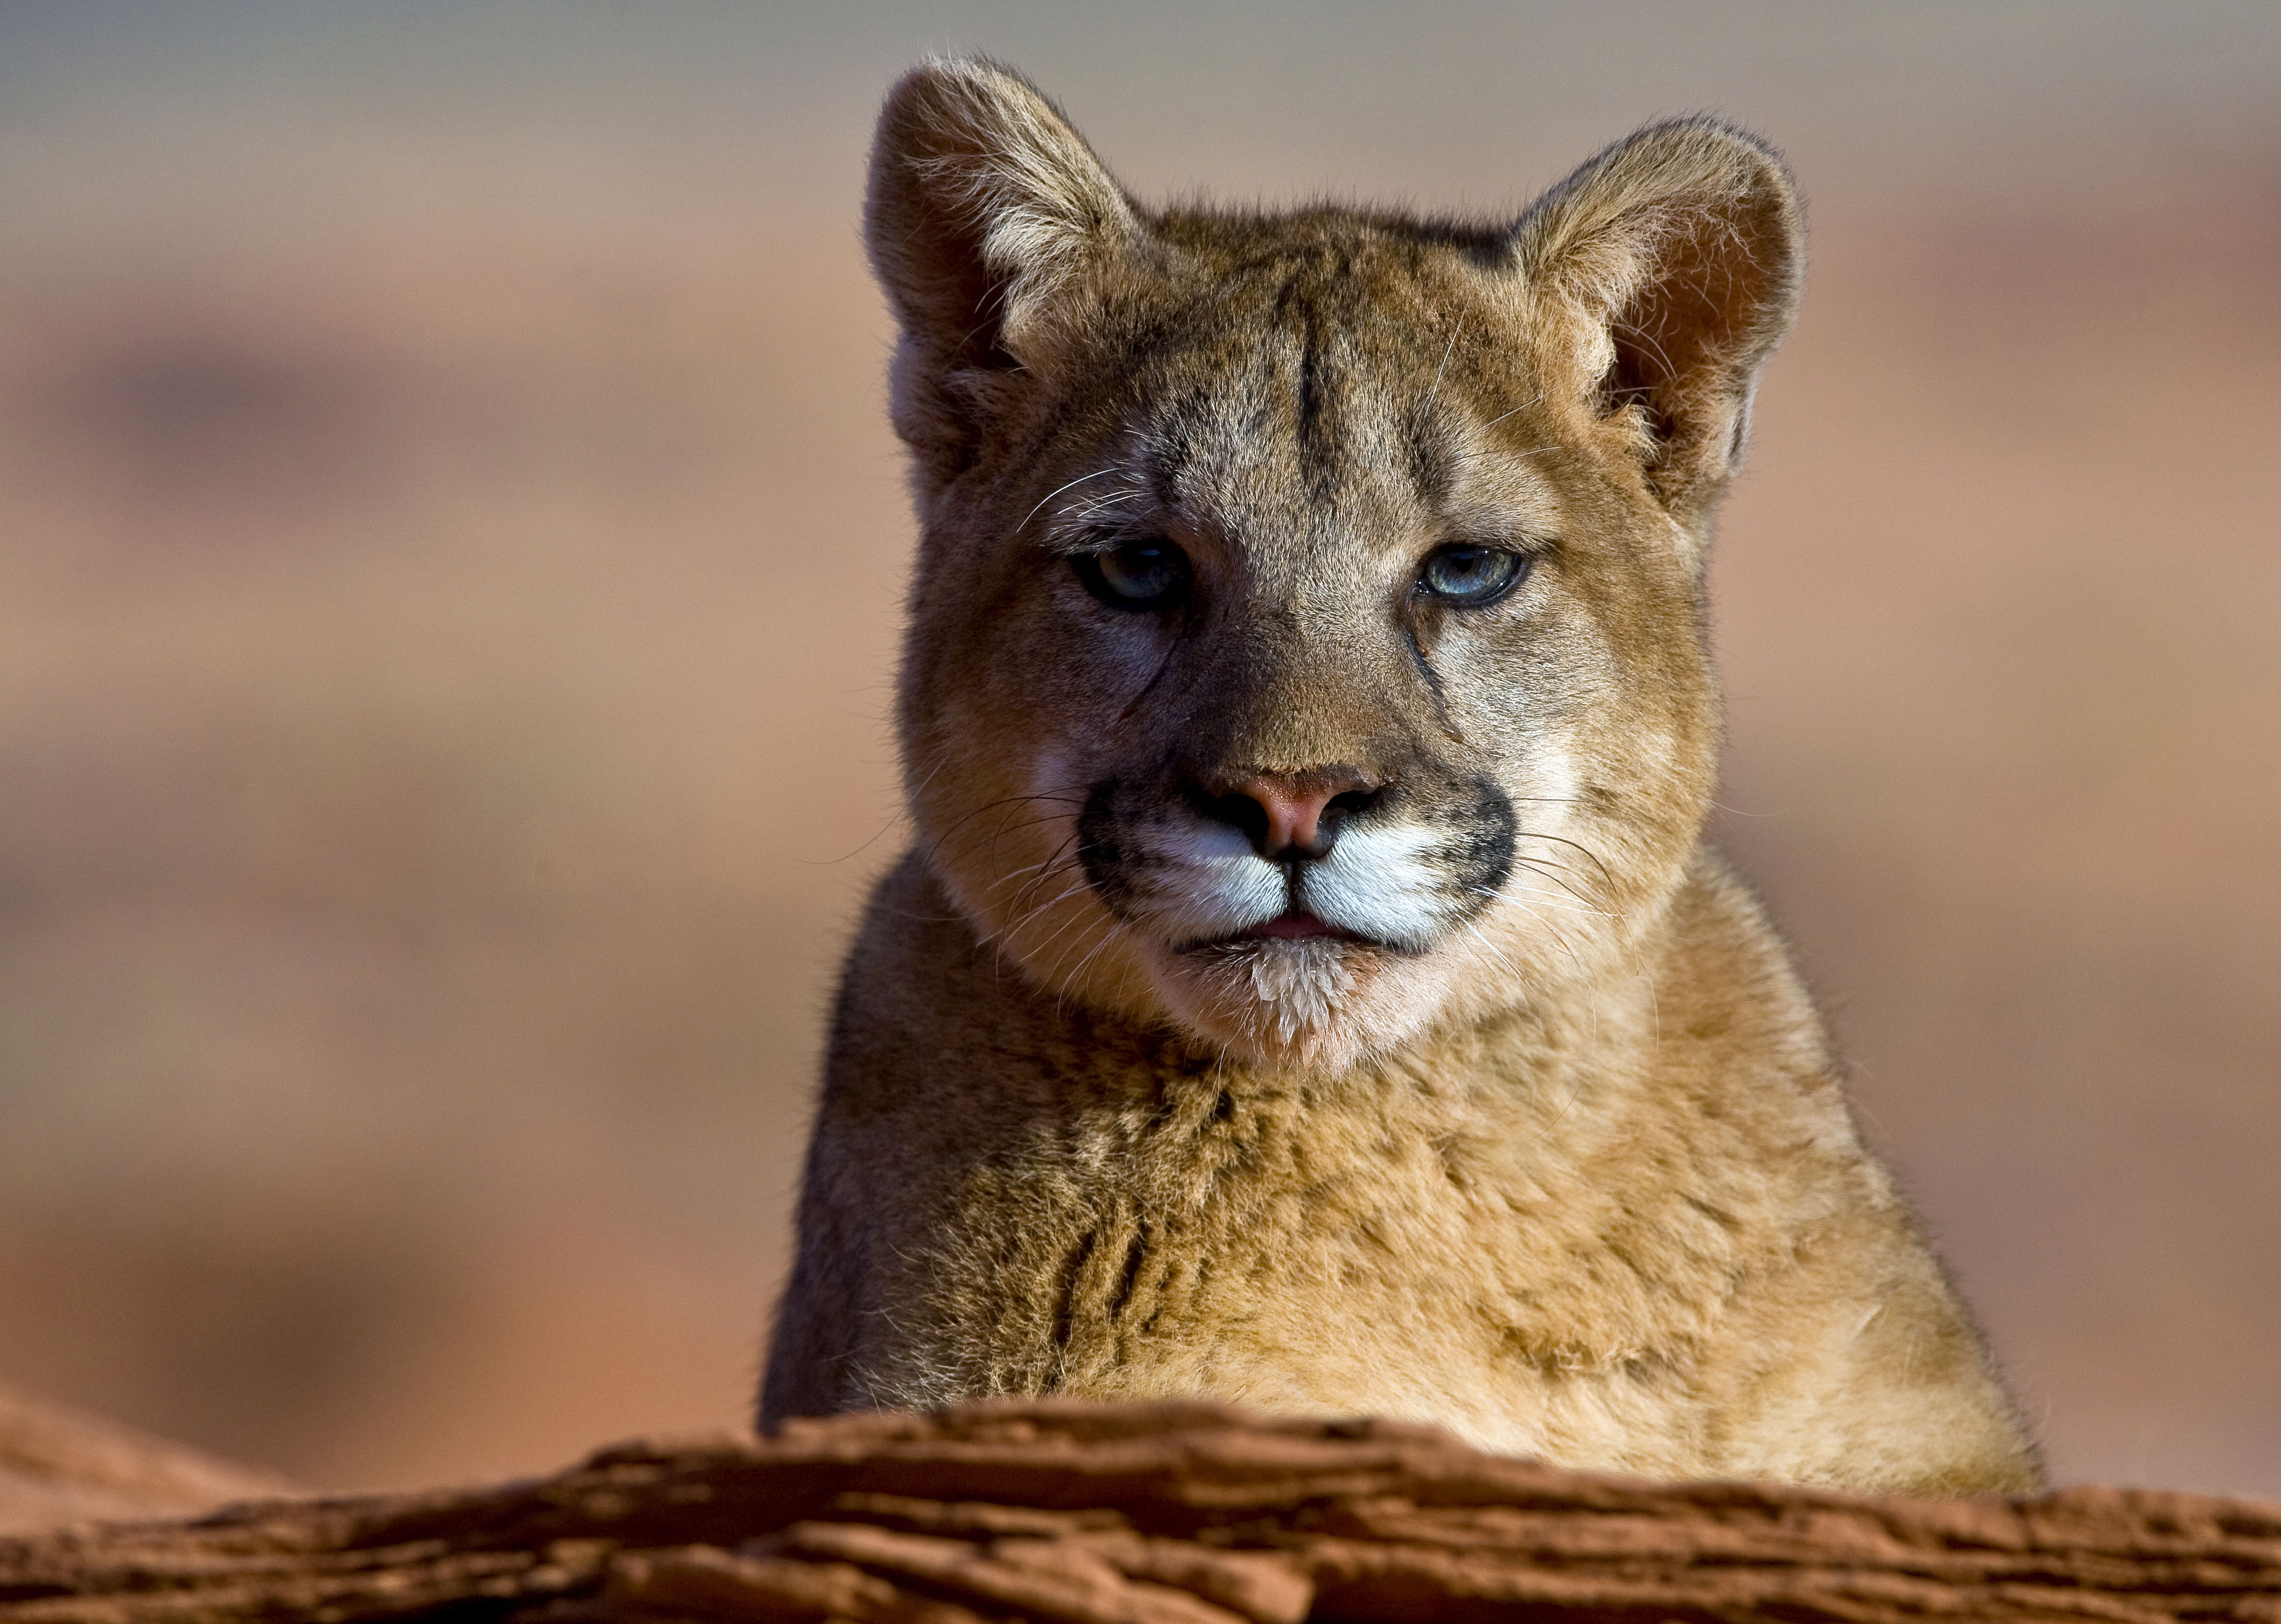 Toxic fog blamed for dangerously high mercury levels in mountain lions